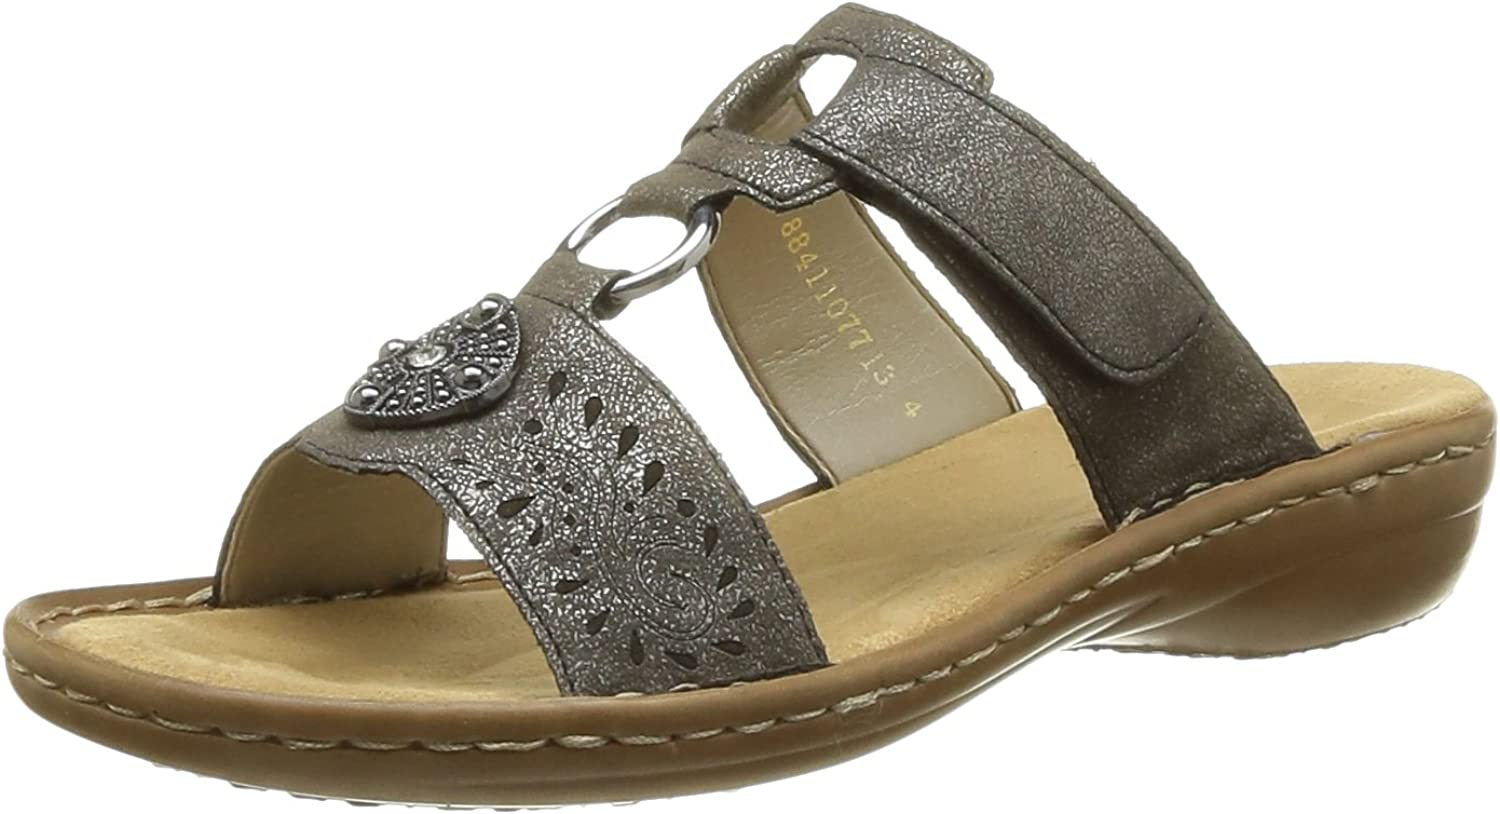 Rieker Women's Olympic Casual Sandals